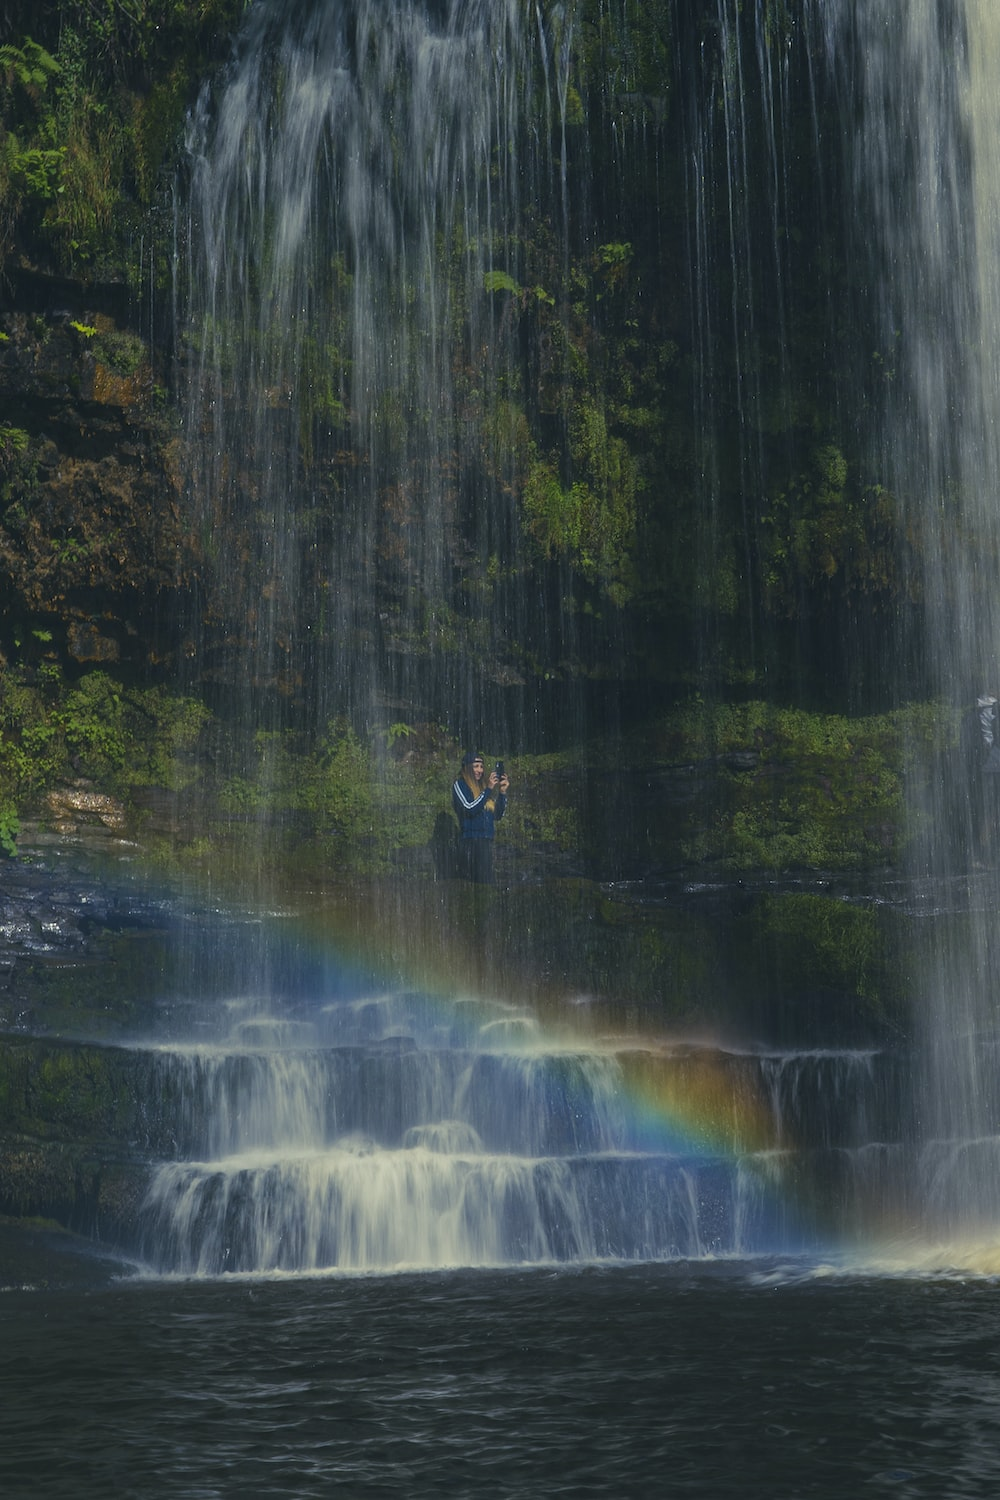 man in black jacket sitting on rock in front of waterfalls during daytime